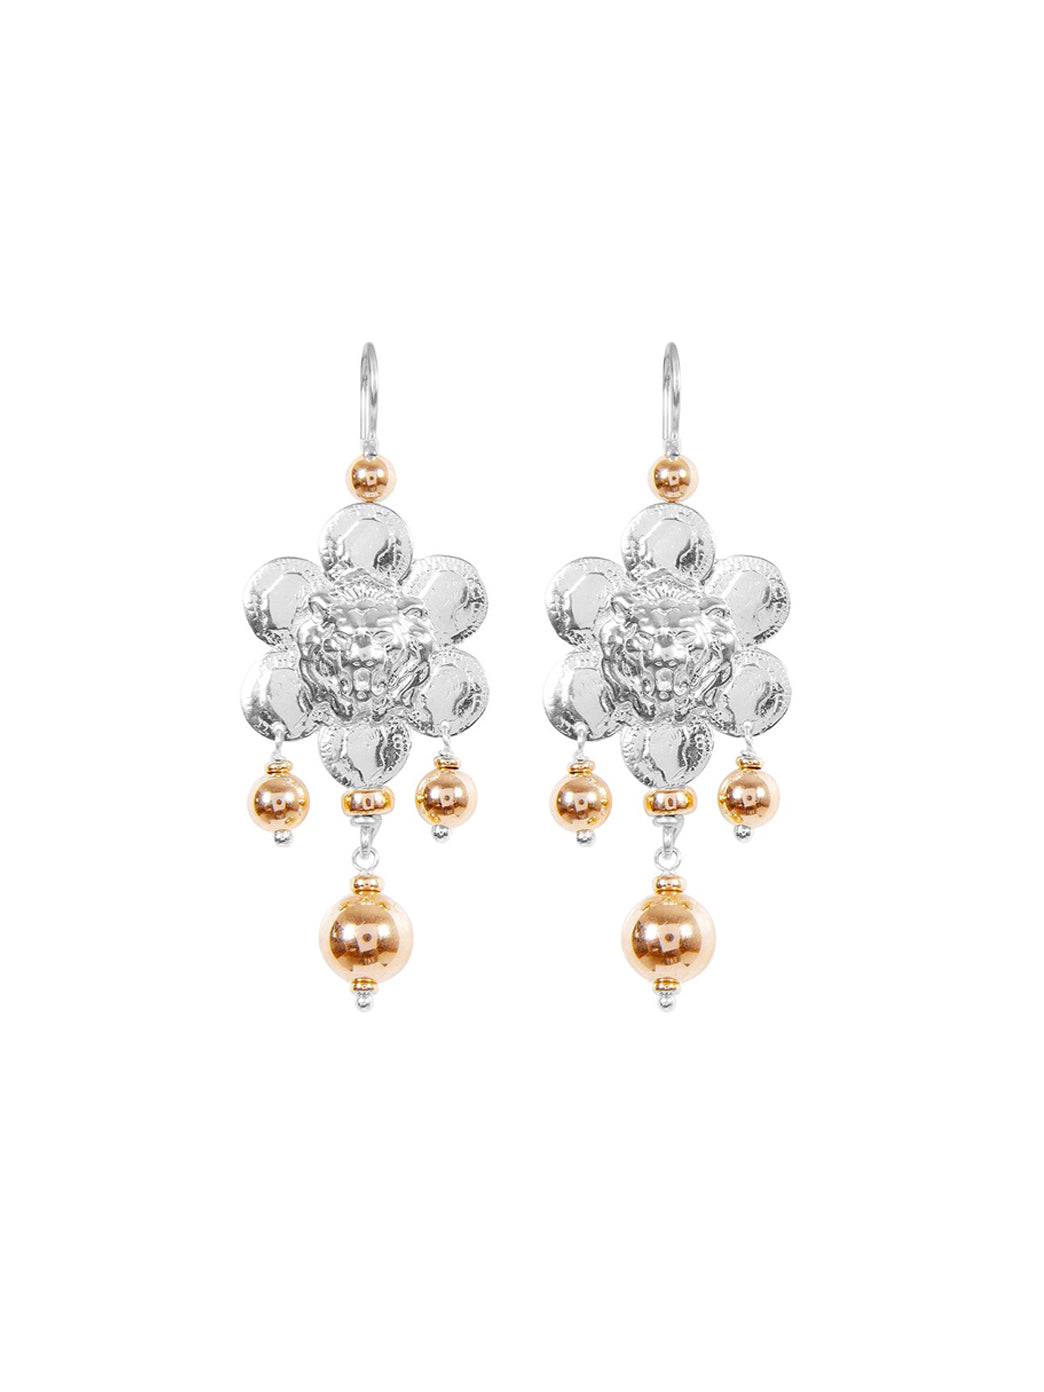 Fiorina Jewellery Giardini Earrings